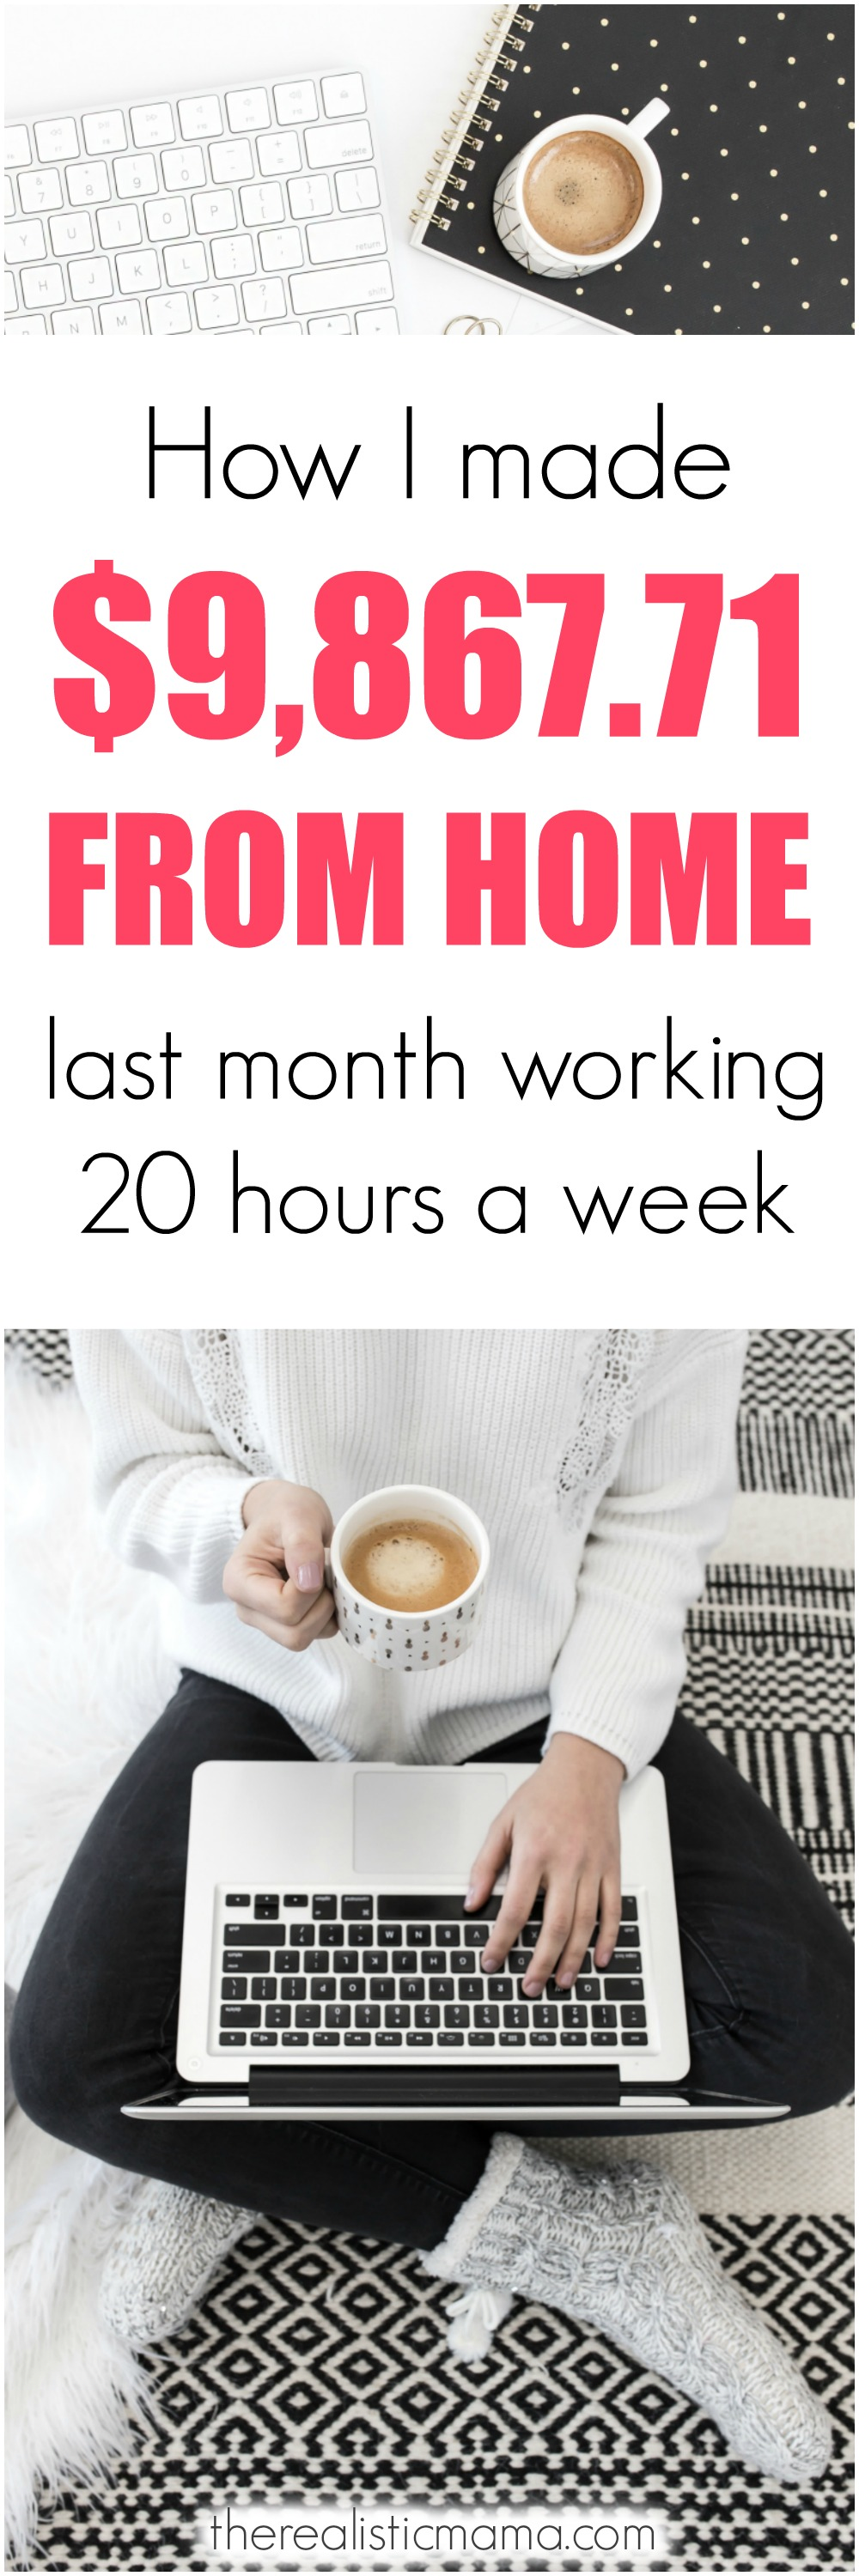 How I made $9867.71 from home last month working 20 hours a week